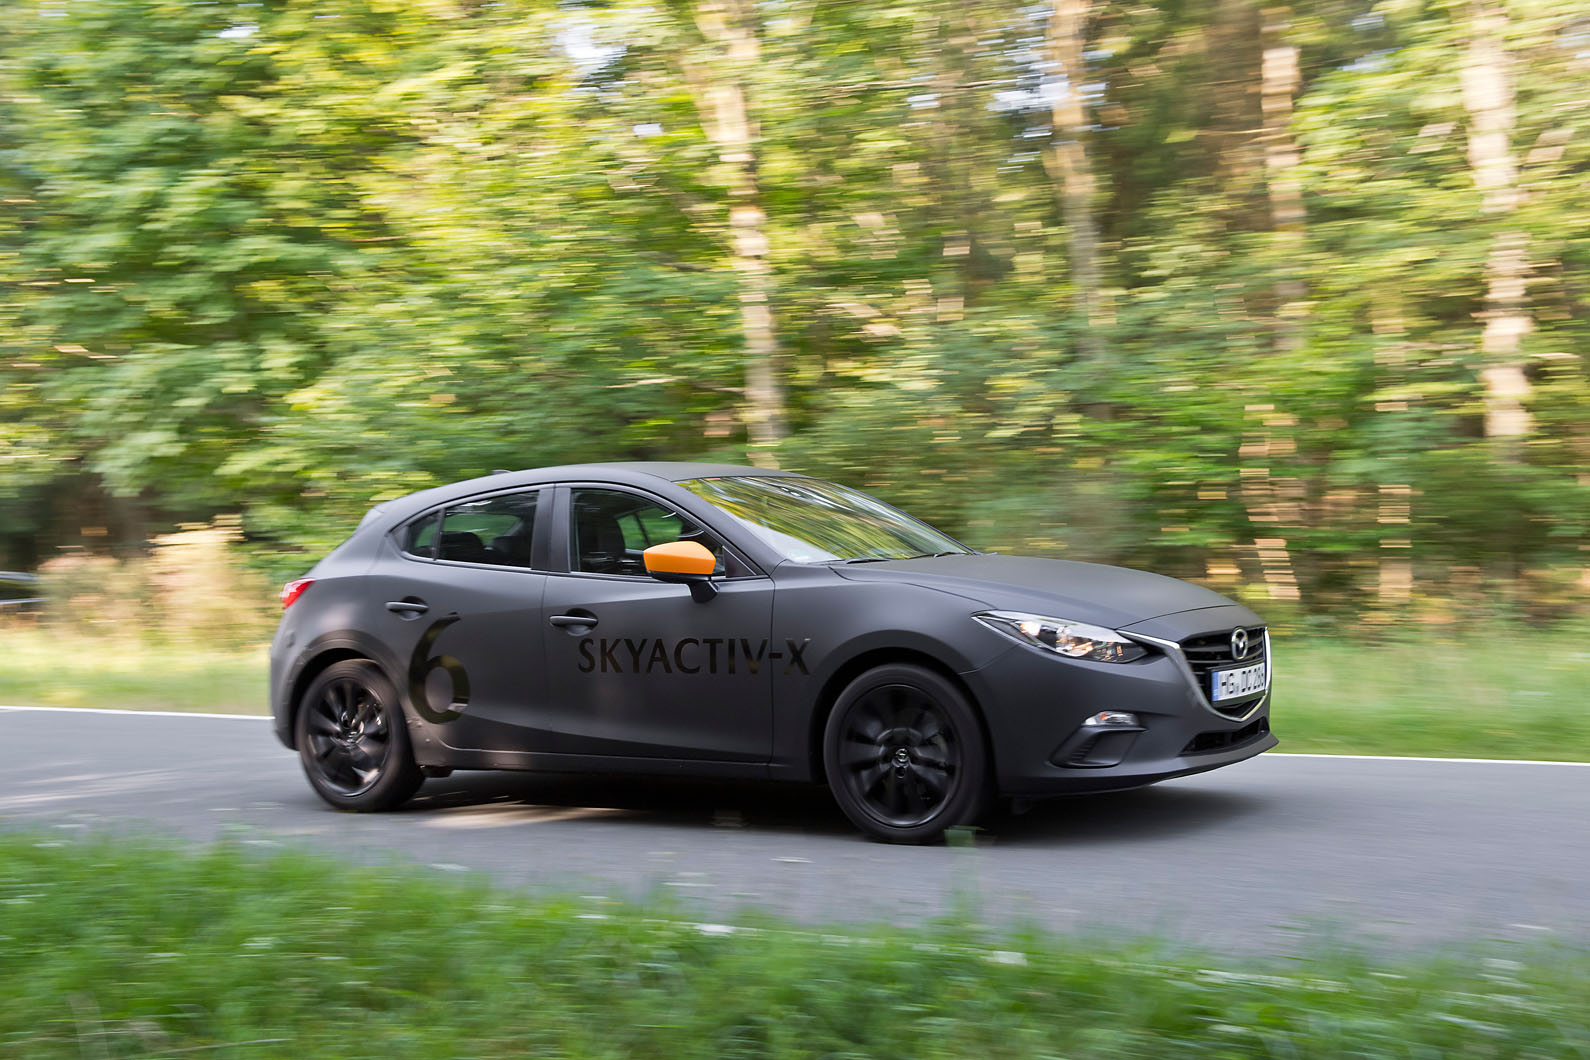 mazda 3 skyactiv x 2019 prototype review new compression ignition petrol engine driven autocar. Black Bedroom Furniture Sets. Home Design Ideas